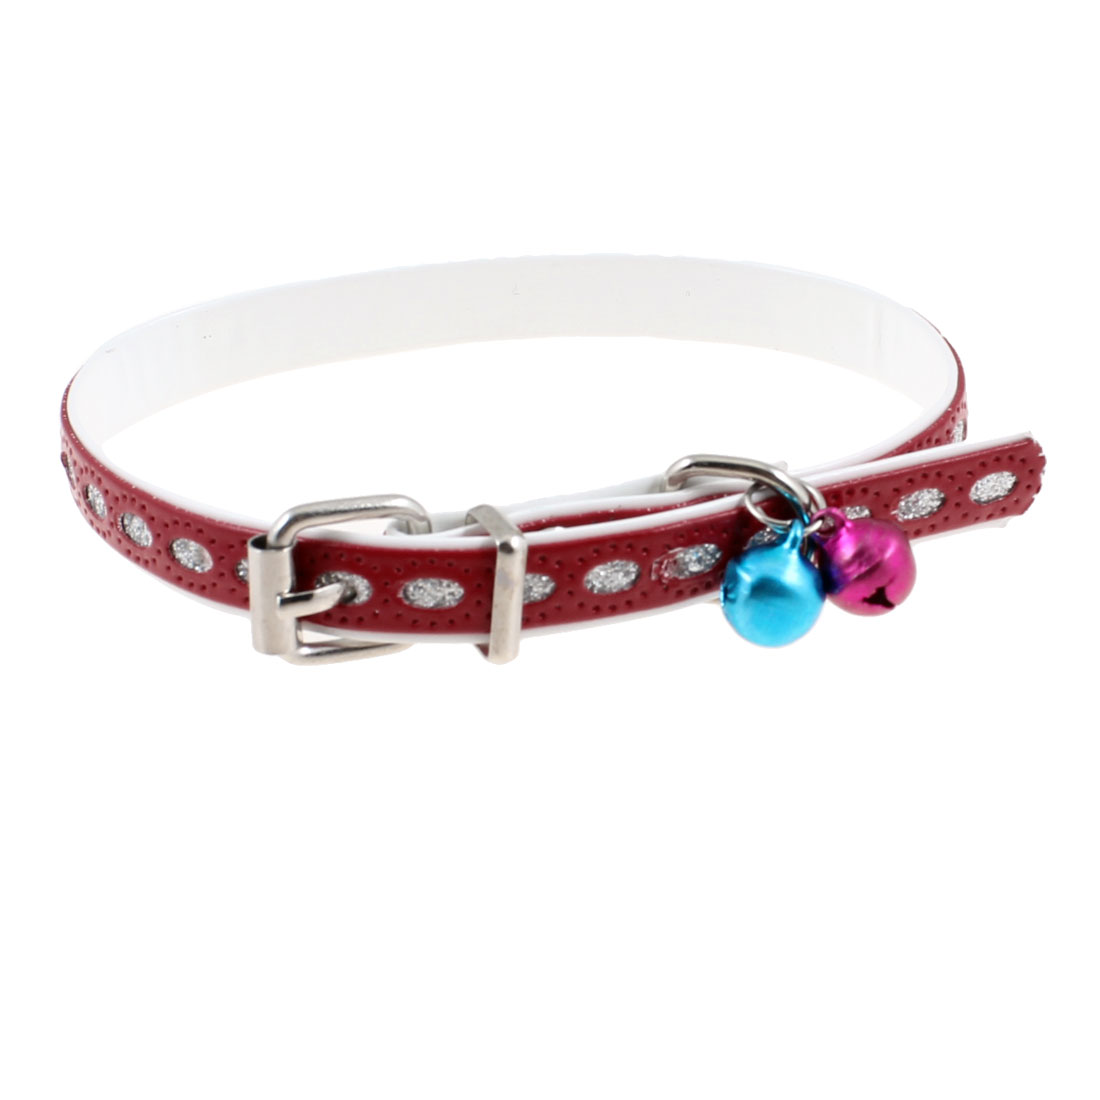 Faux Leather Adjustable Blue Fuchsia Jingle Bell Dog Cat Pet Collar Red